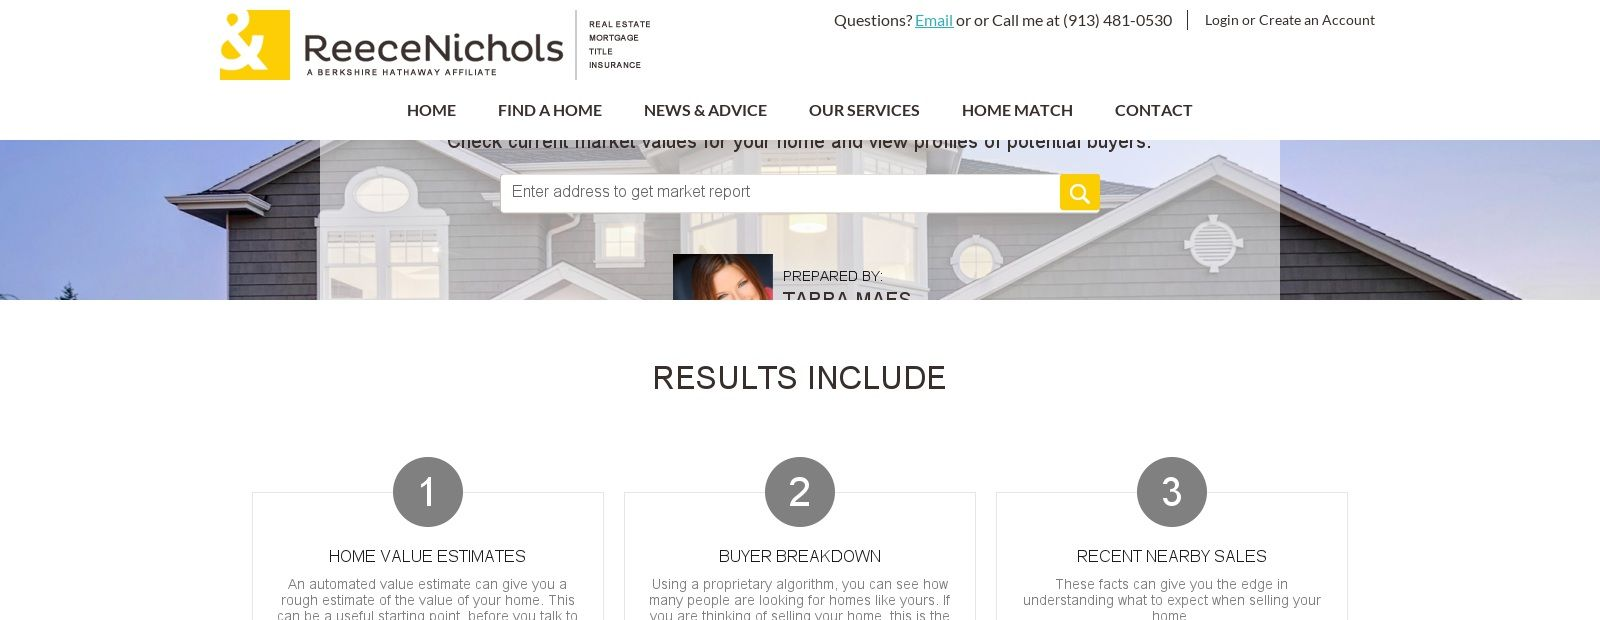 Home Value Estimator By Tarra Maes Home Values Home Selling House